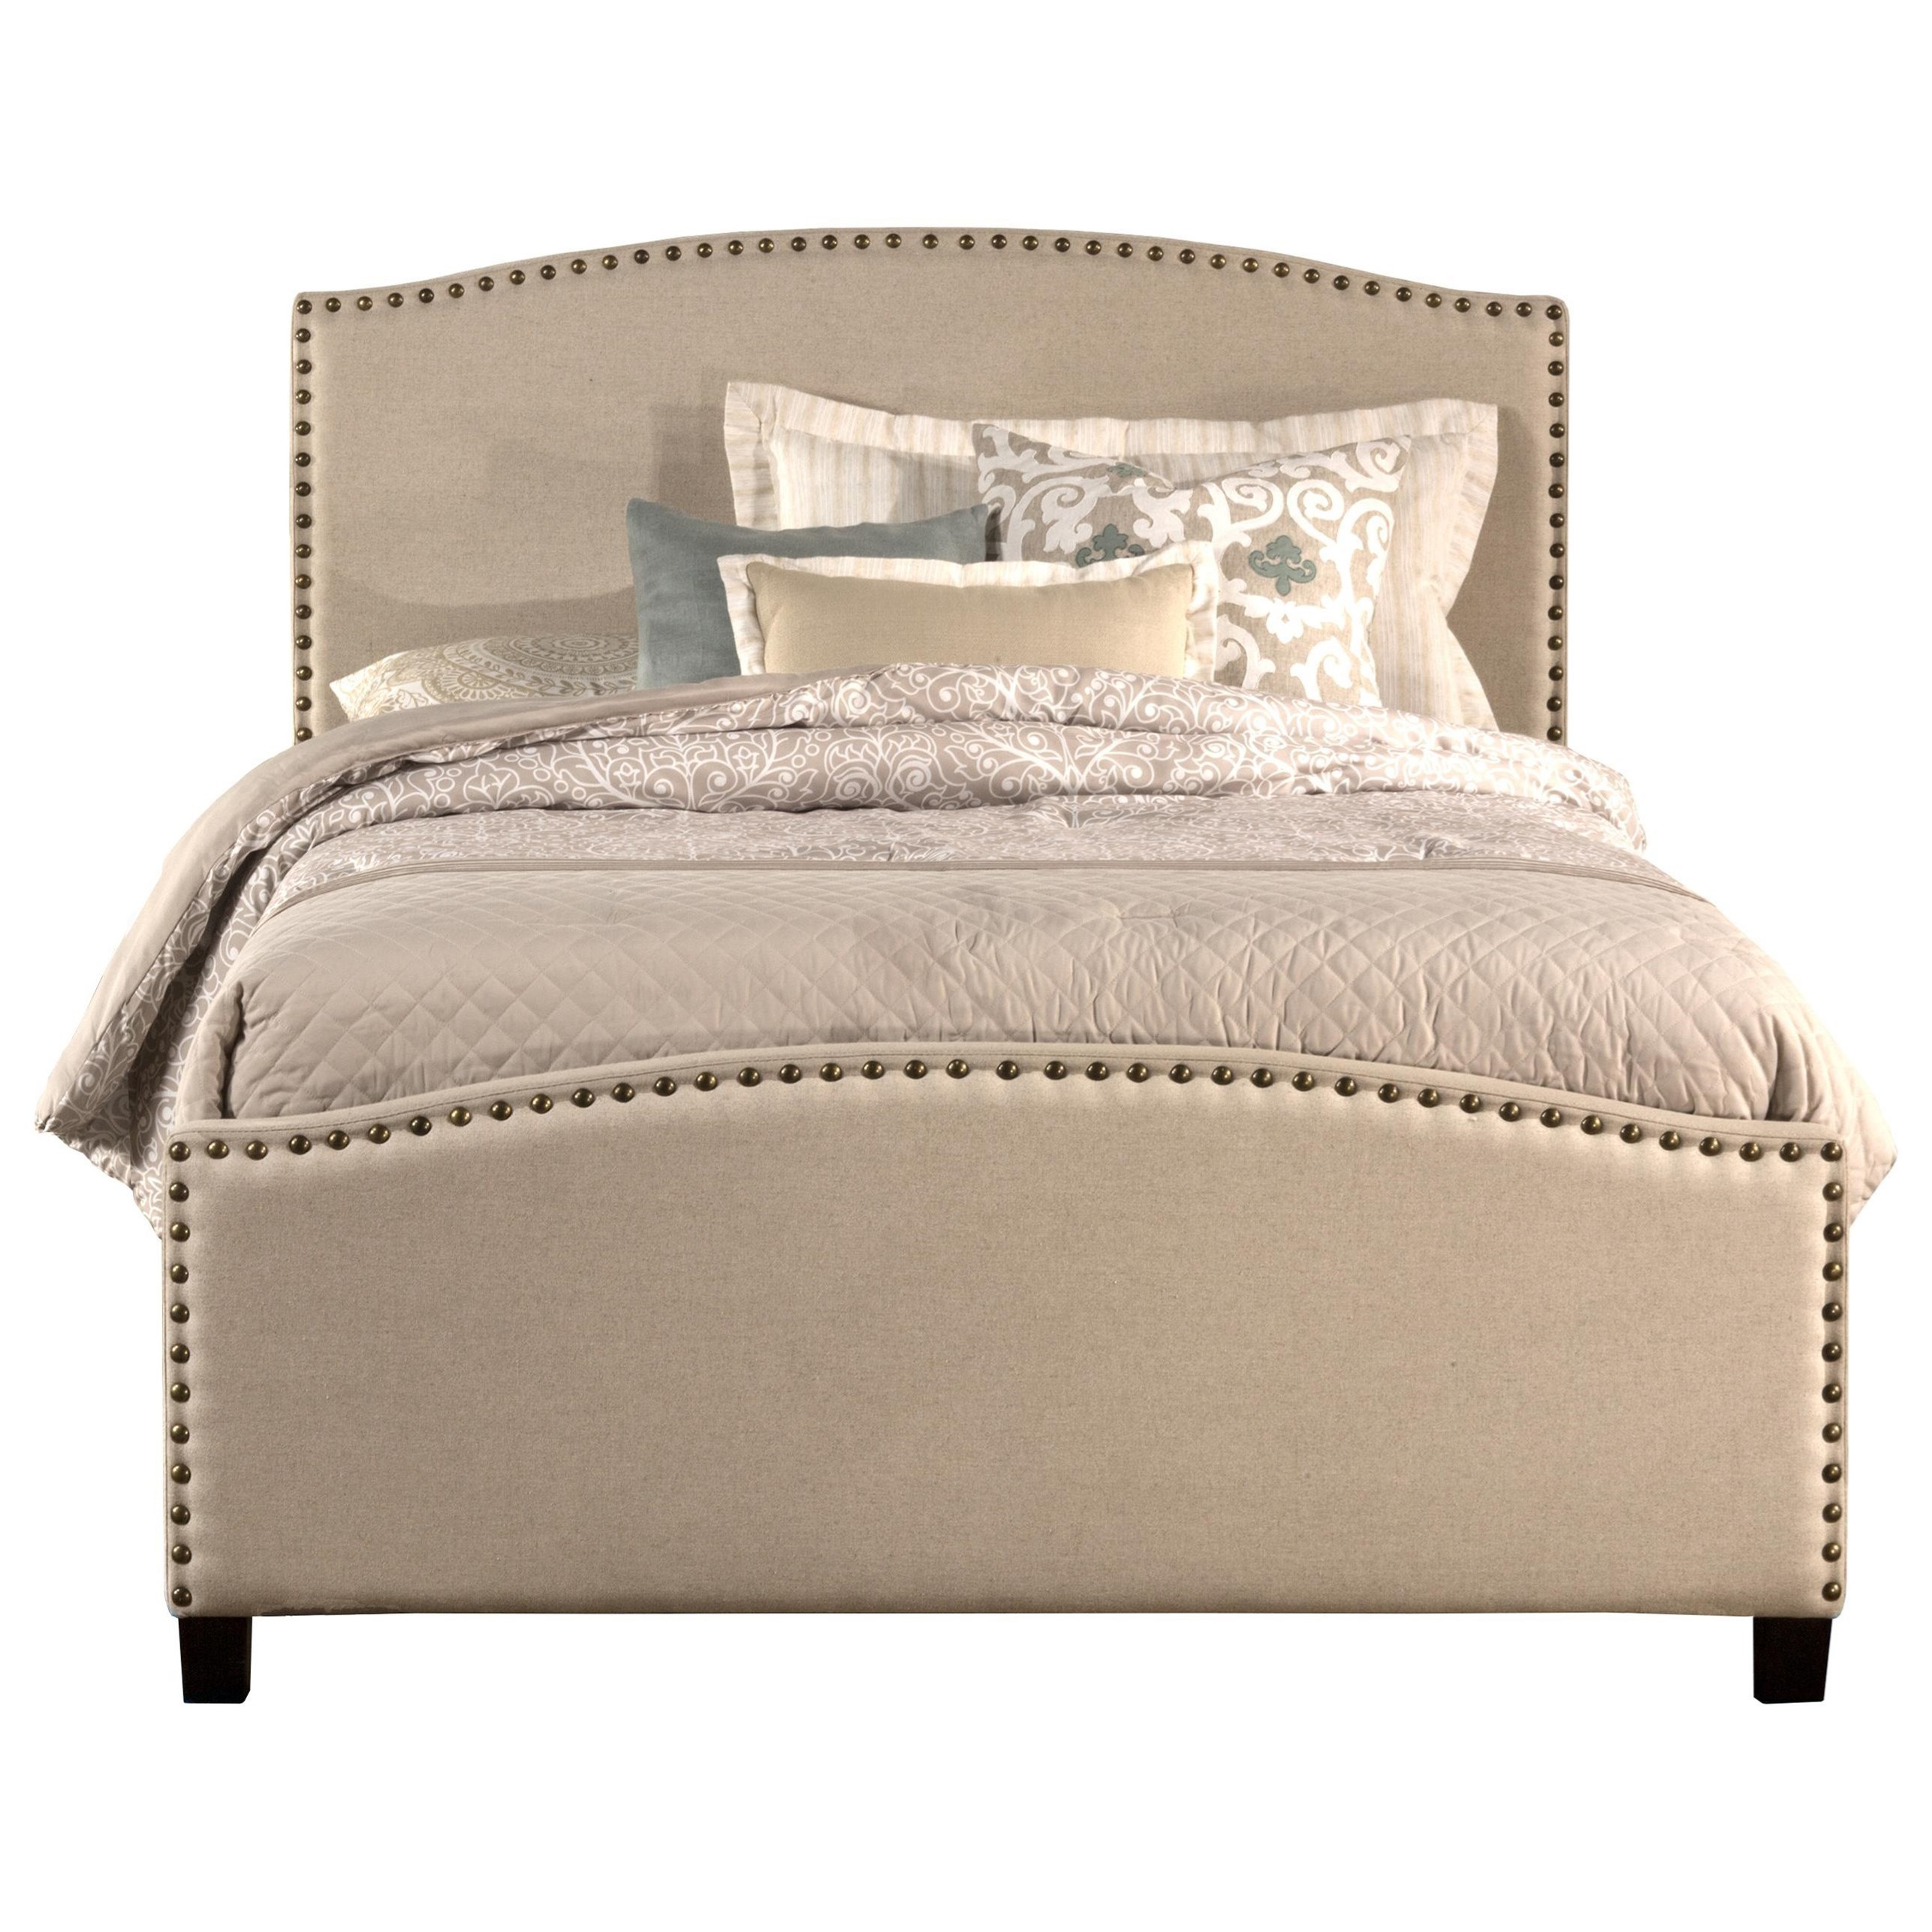 Kerstein King Bed Set with Rails at Ruby Gordon Home